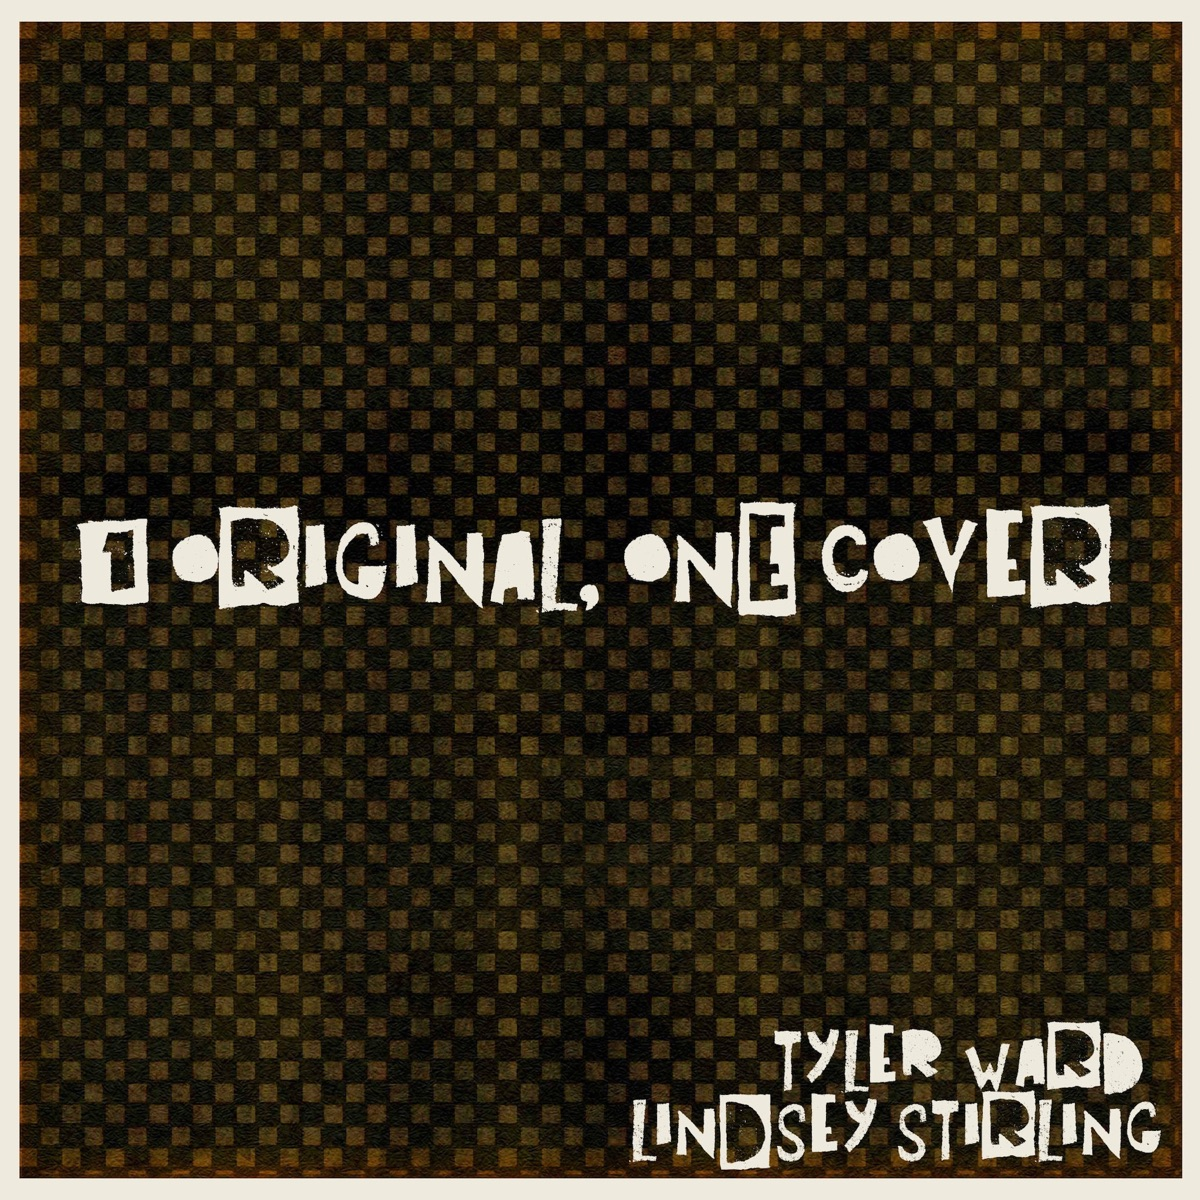 1 Original ONE Cover - Single Tyler Ward  Lindsey Stirling CD cover